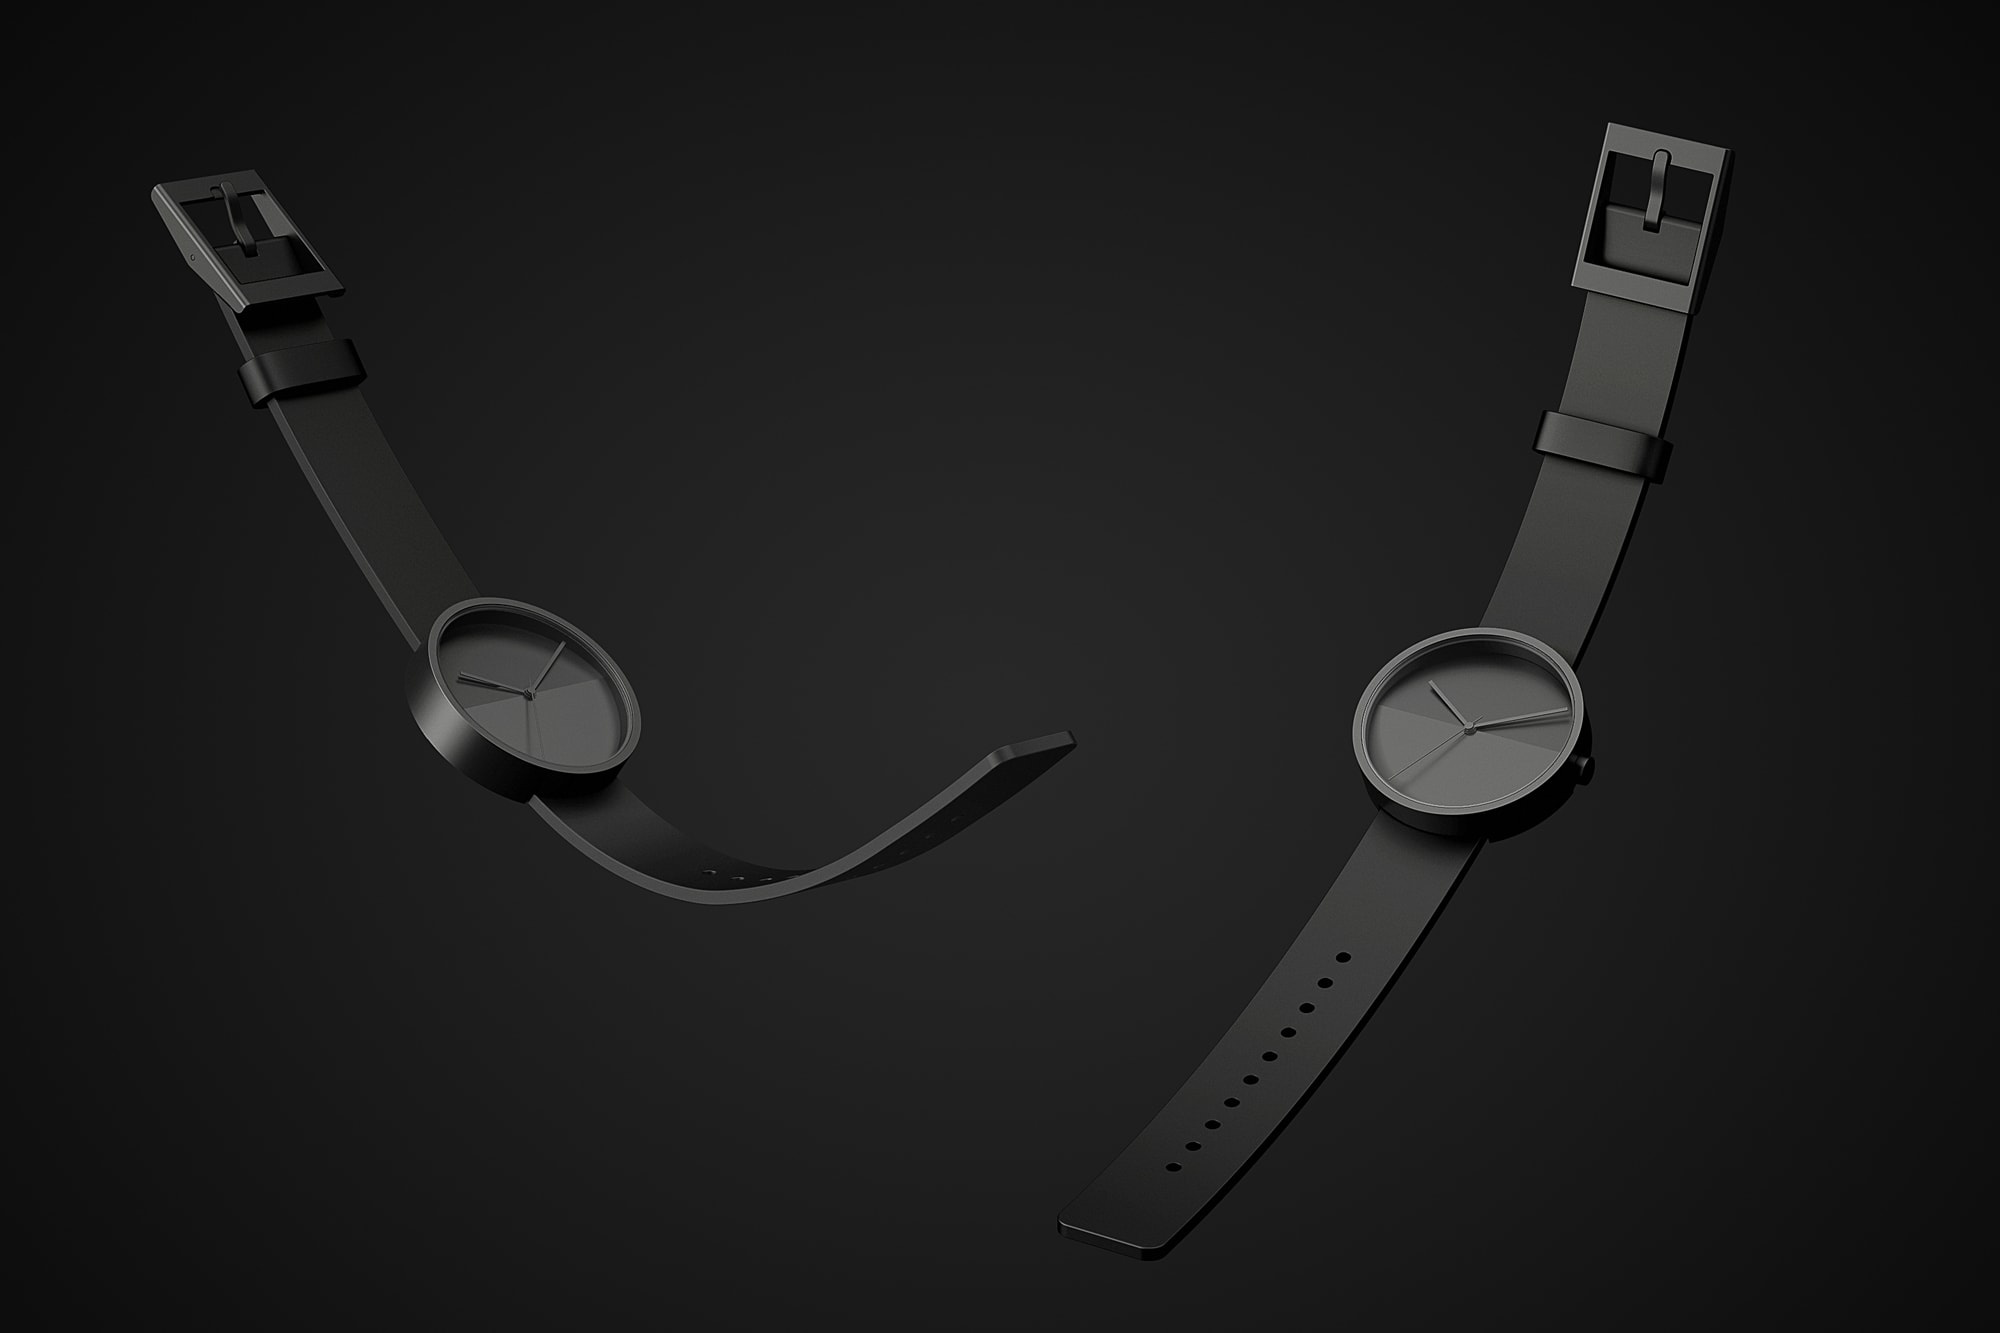 Front view of the Horizon watches floating in black on a black background.